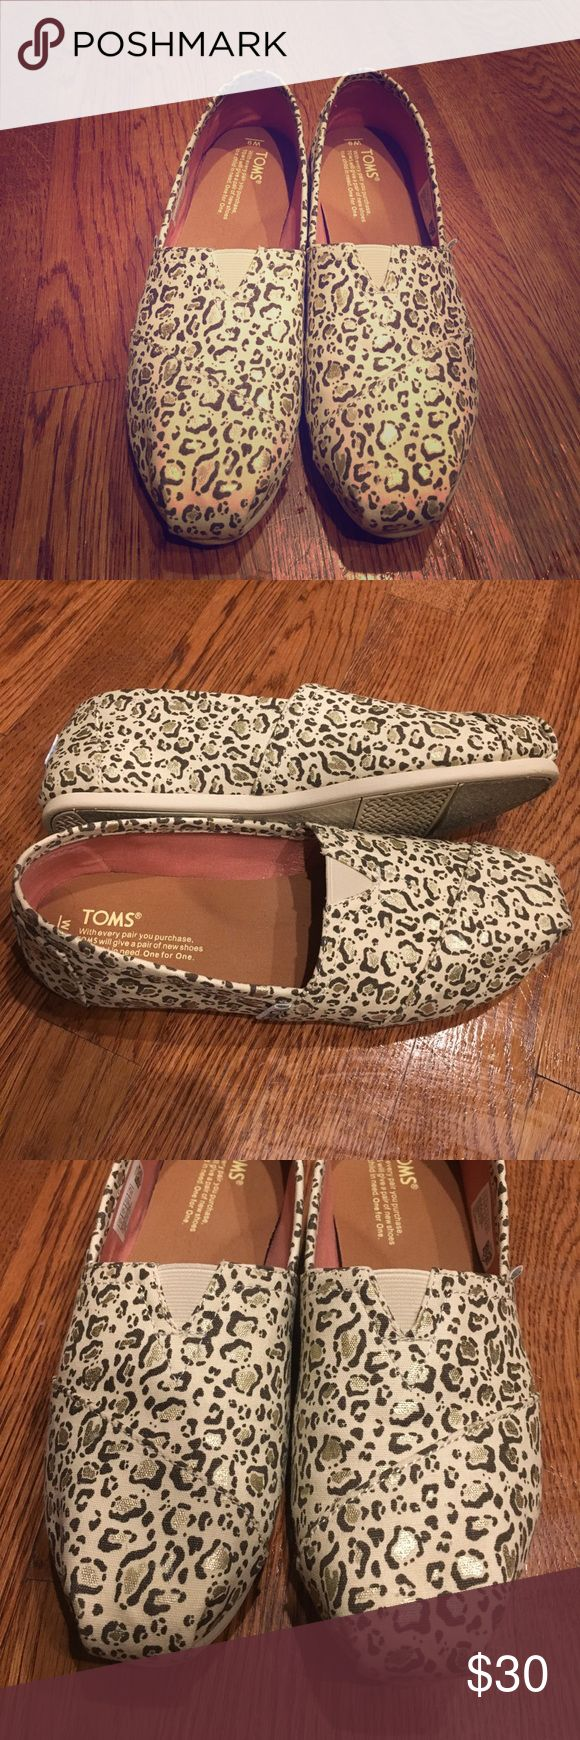 LIKE NEW Leopard Toms Worn ONCE. Like new.  Cream canvas with brown & gold leopard print. TOMS Shoes Flats & Loafers